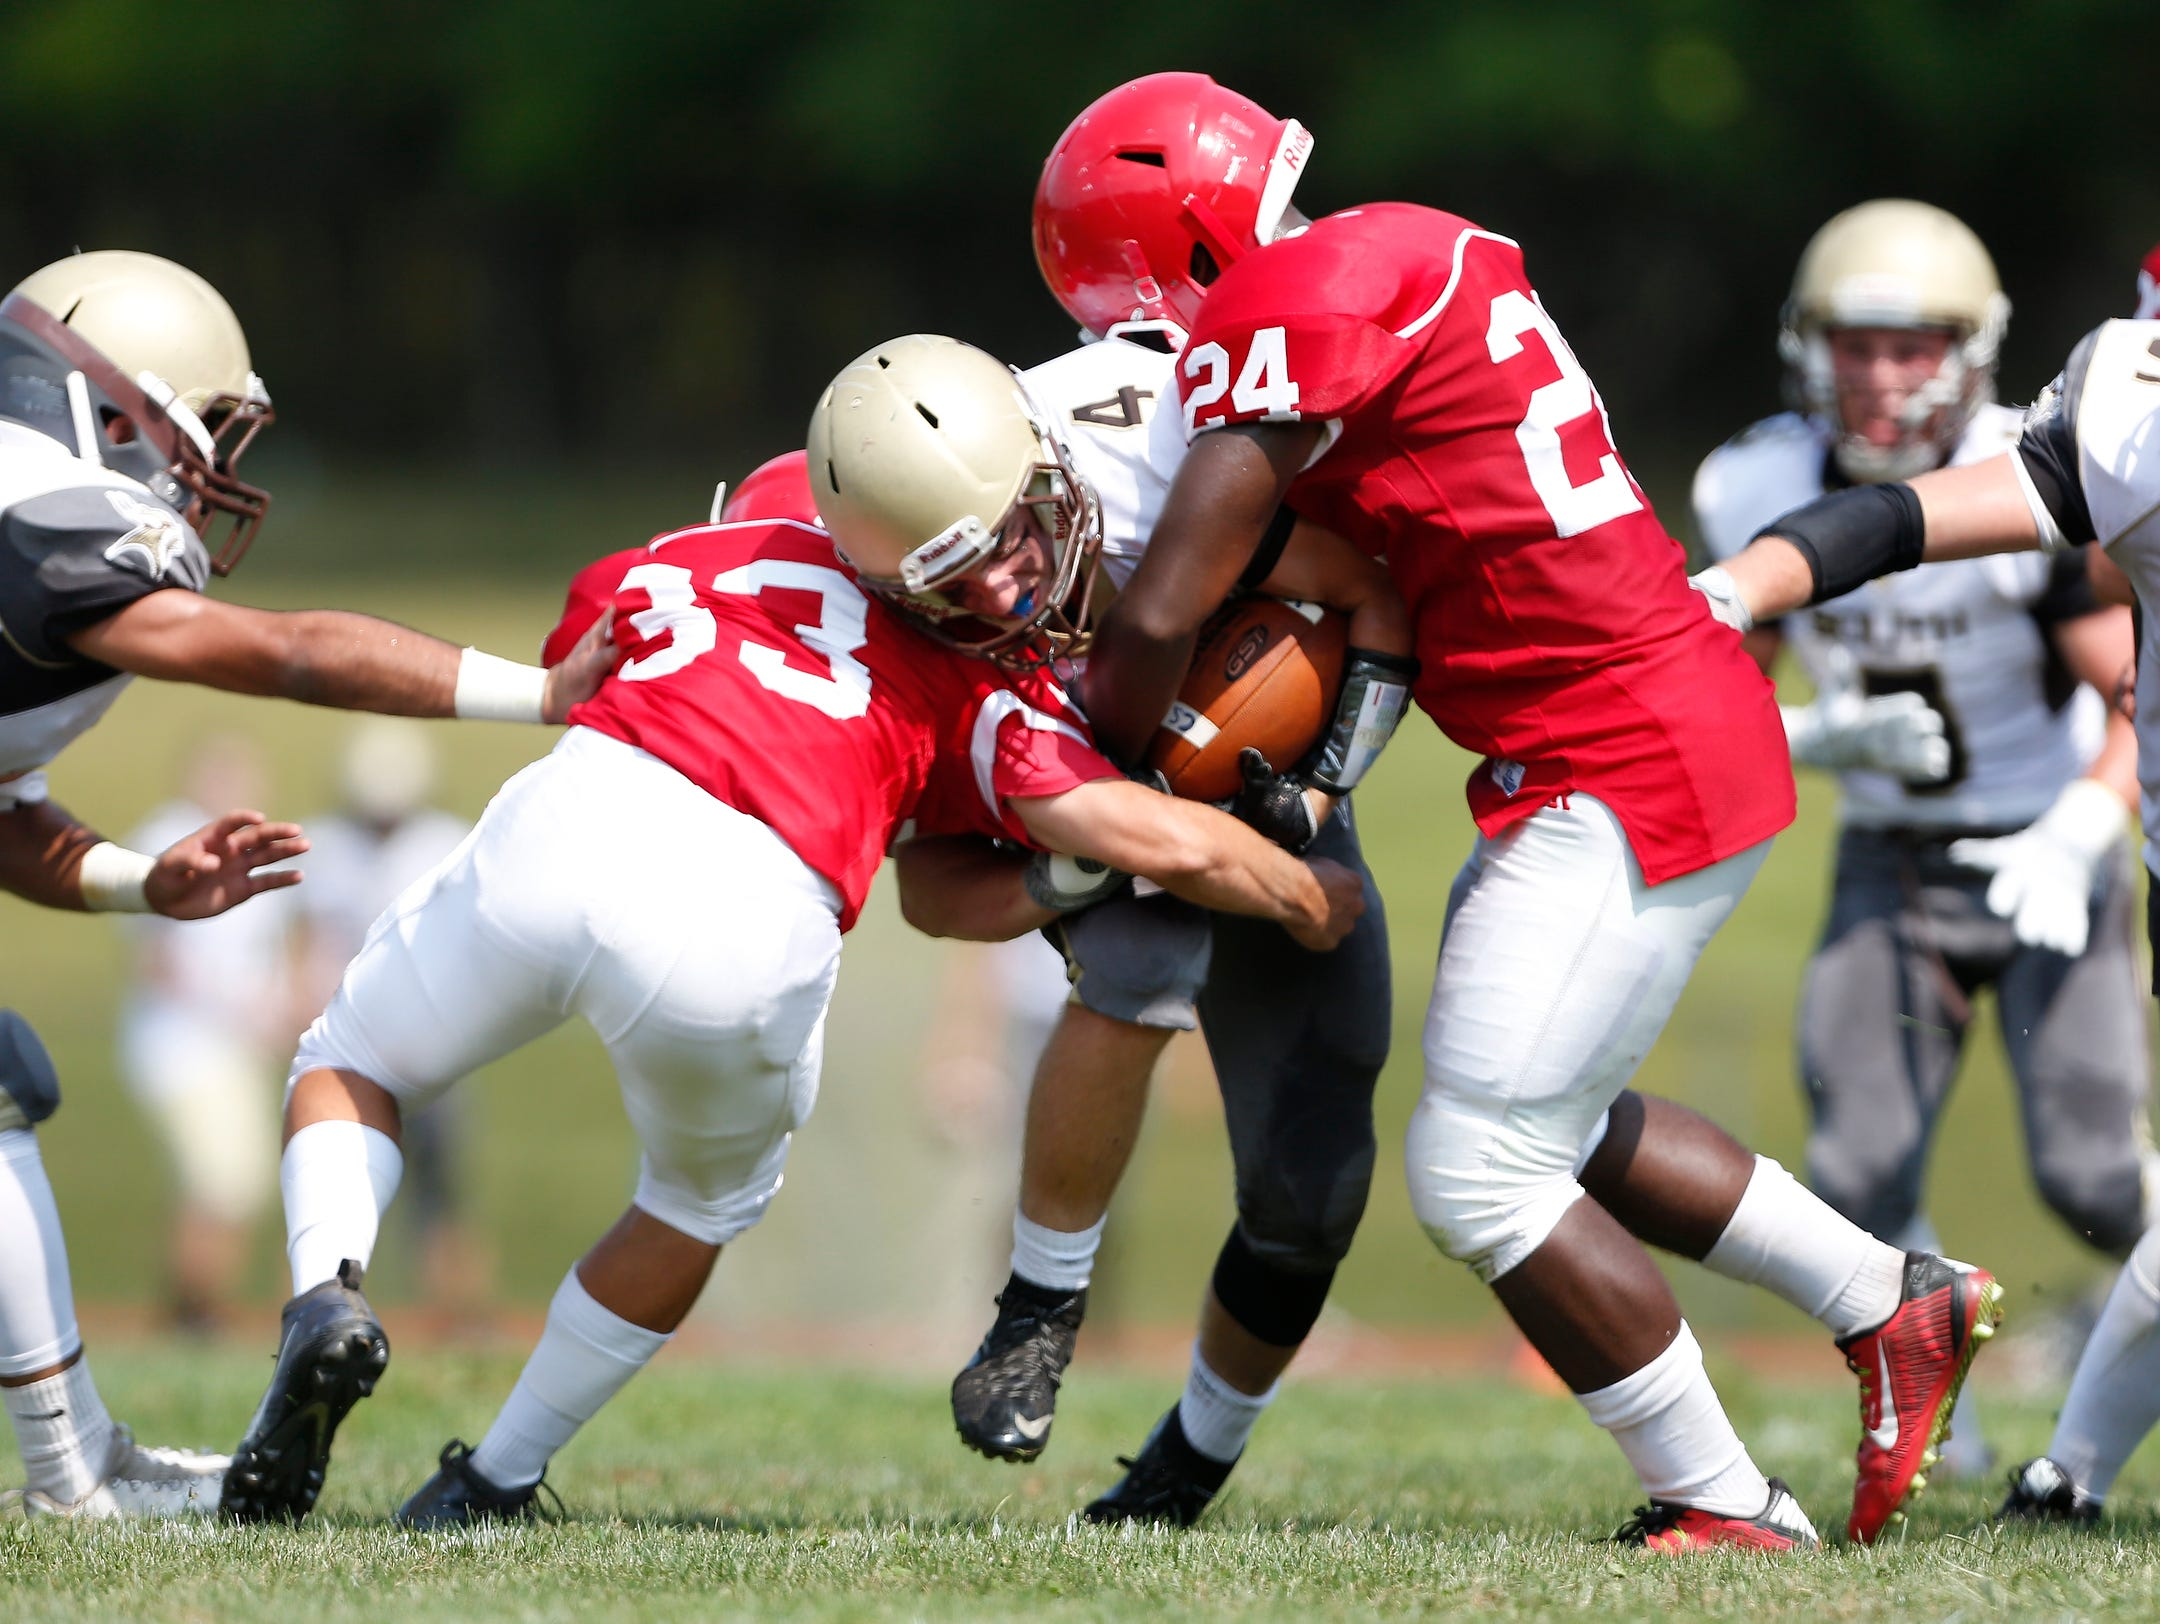 Clarkstown South running back Kyle Samuels (4) is tackled by North Rockland's Mike Csernecky (33) and Justin Graham (24) during football action at North Rockland High School in Thiells on Saturday, September 10, 2016. The game second half is postponed due to heat. Clarkstown South is up at the half, 17-0.